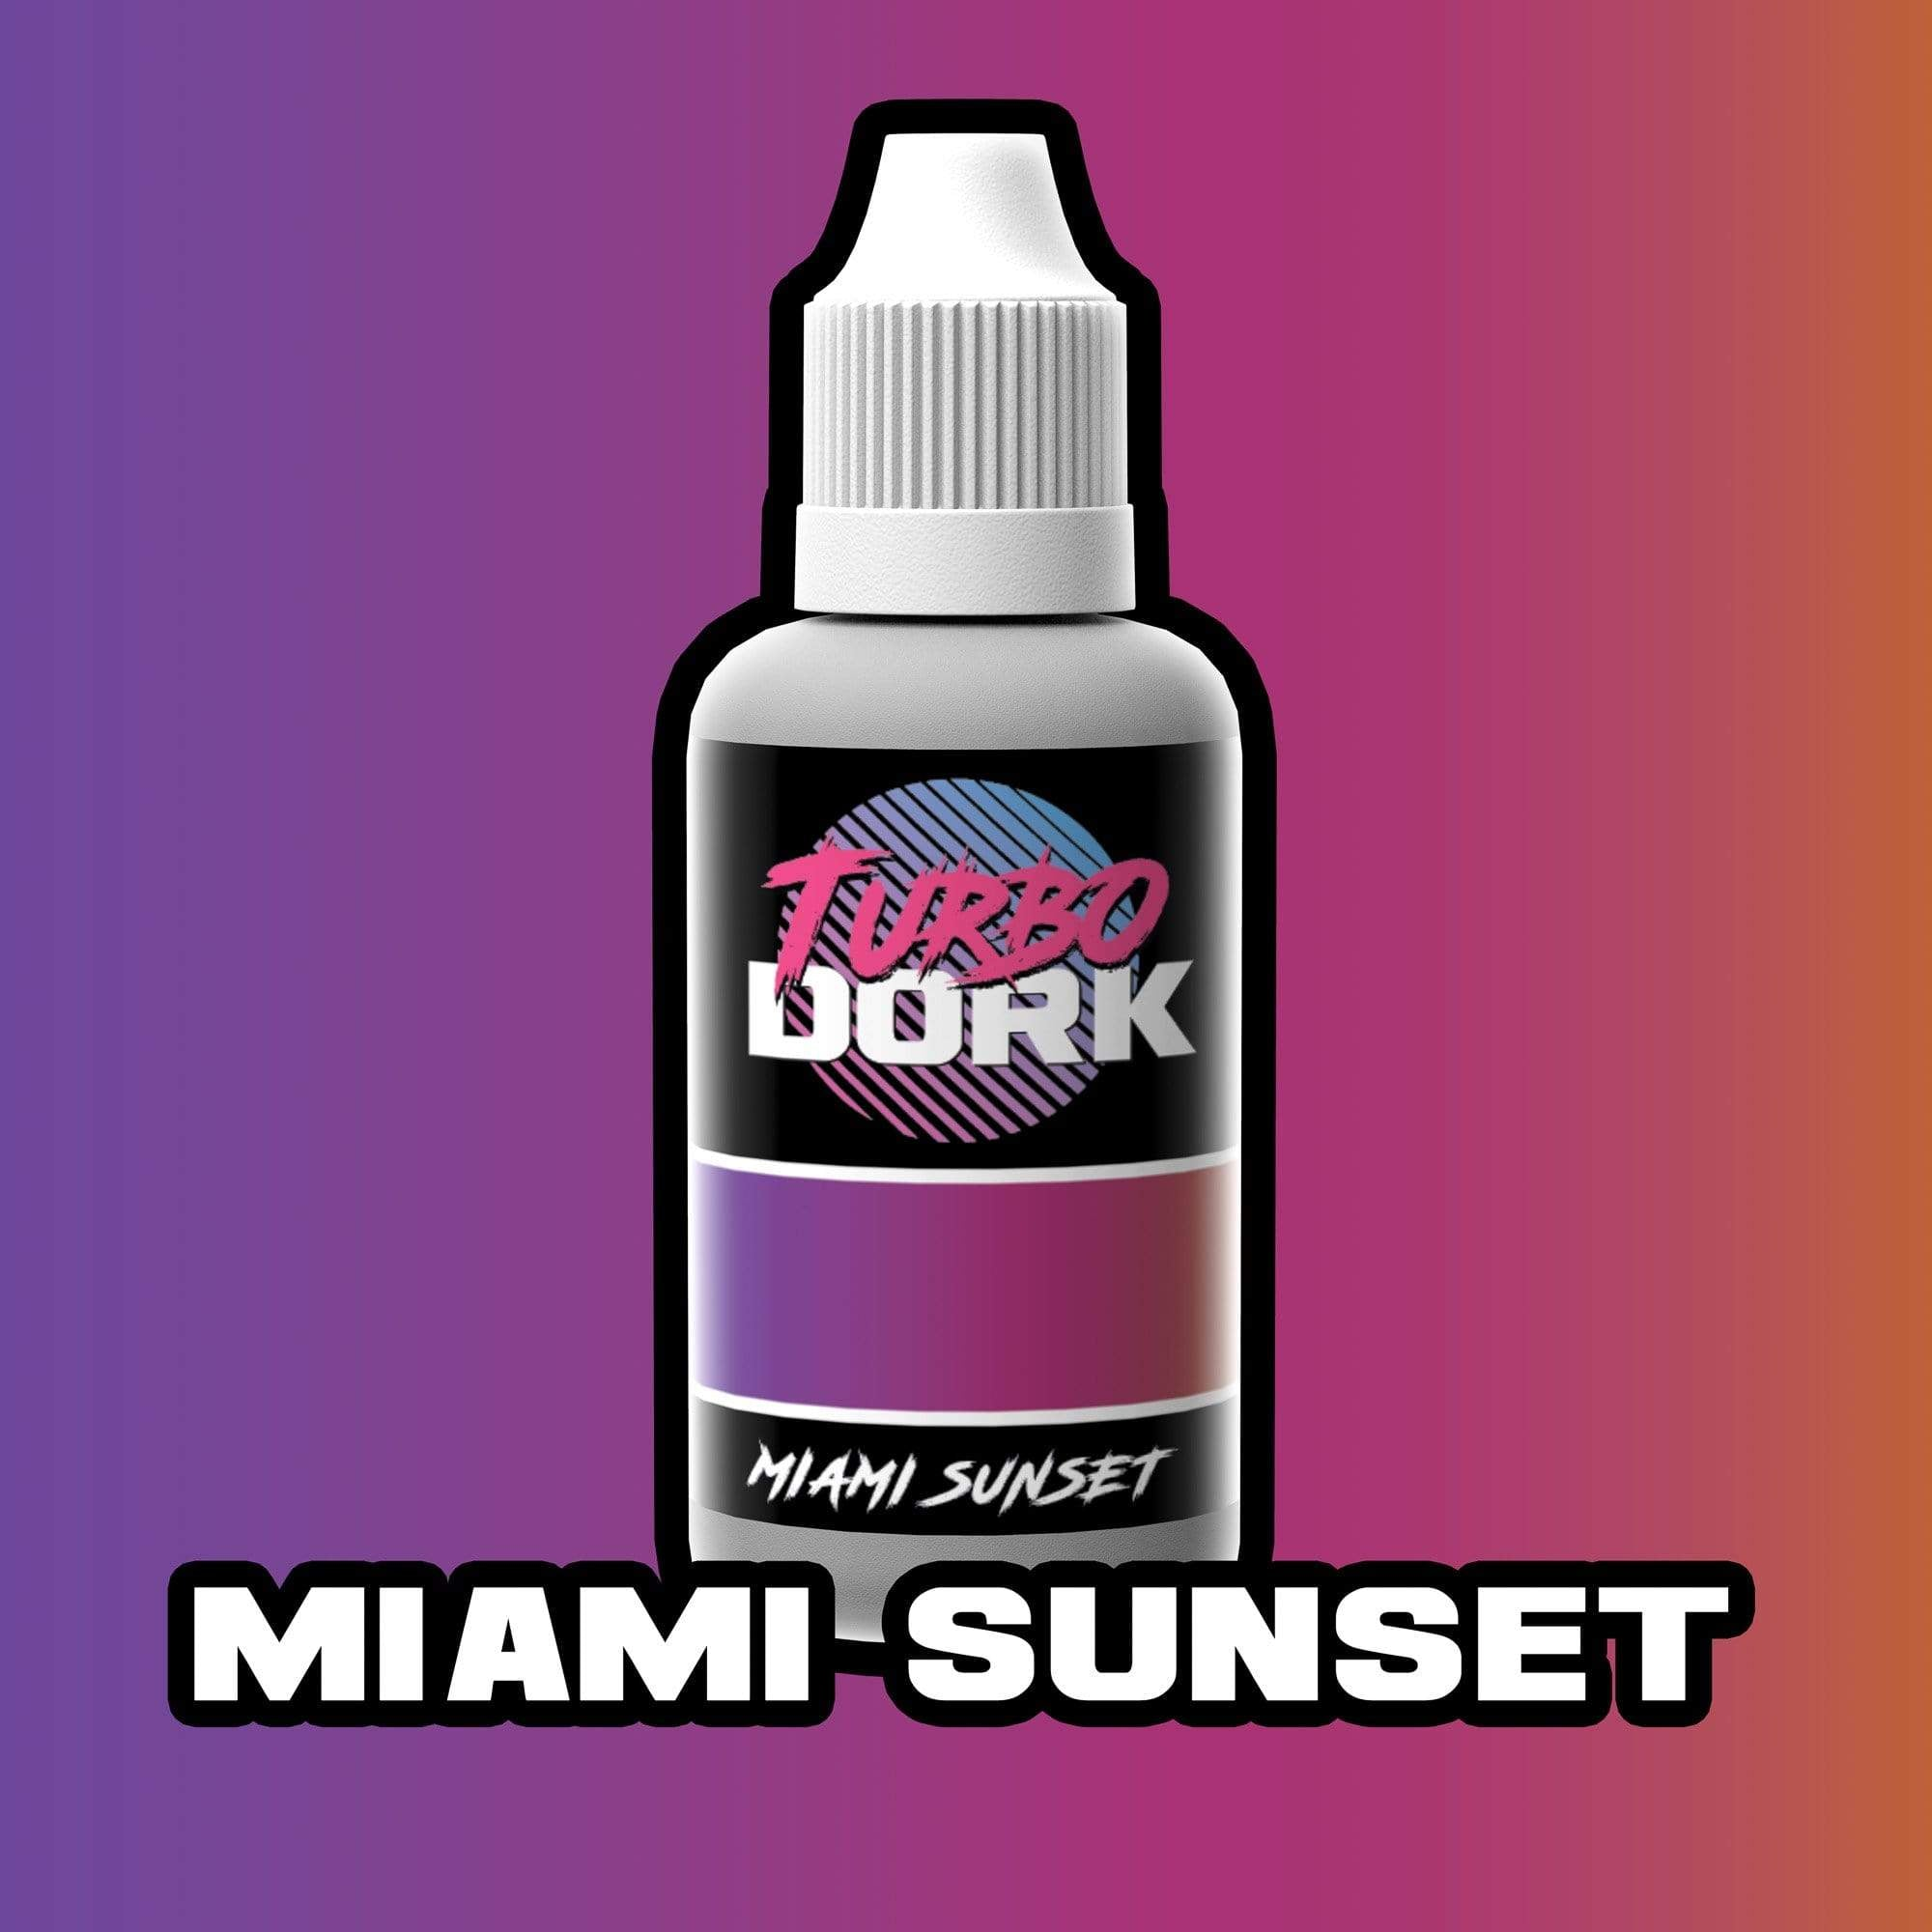 Turbo Dork Colorshift 20ml Bottle Miami Sunset Colorshift Acrylic Paint